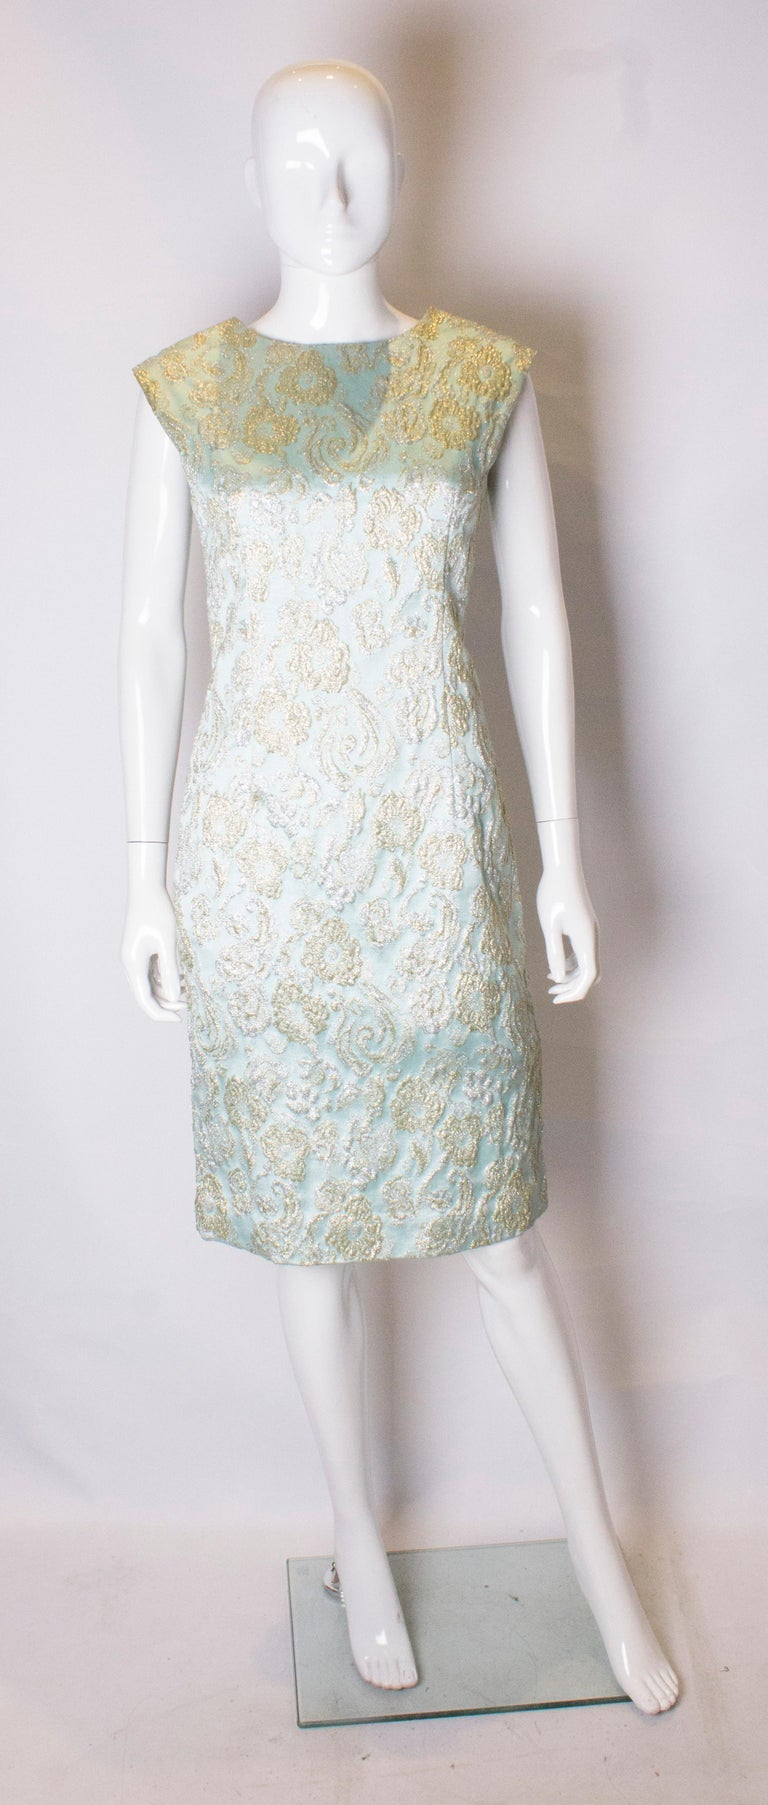 A pretty headturning cocktail dress. The dress is in a blue fabric with gold and silver embellishment. It has a  drape effect on the back and a central back zip. The dress is fully lined.